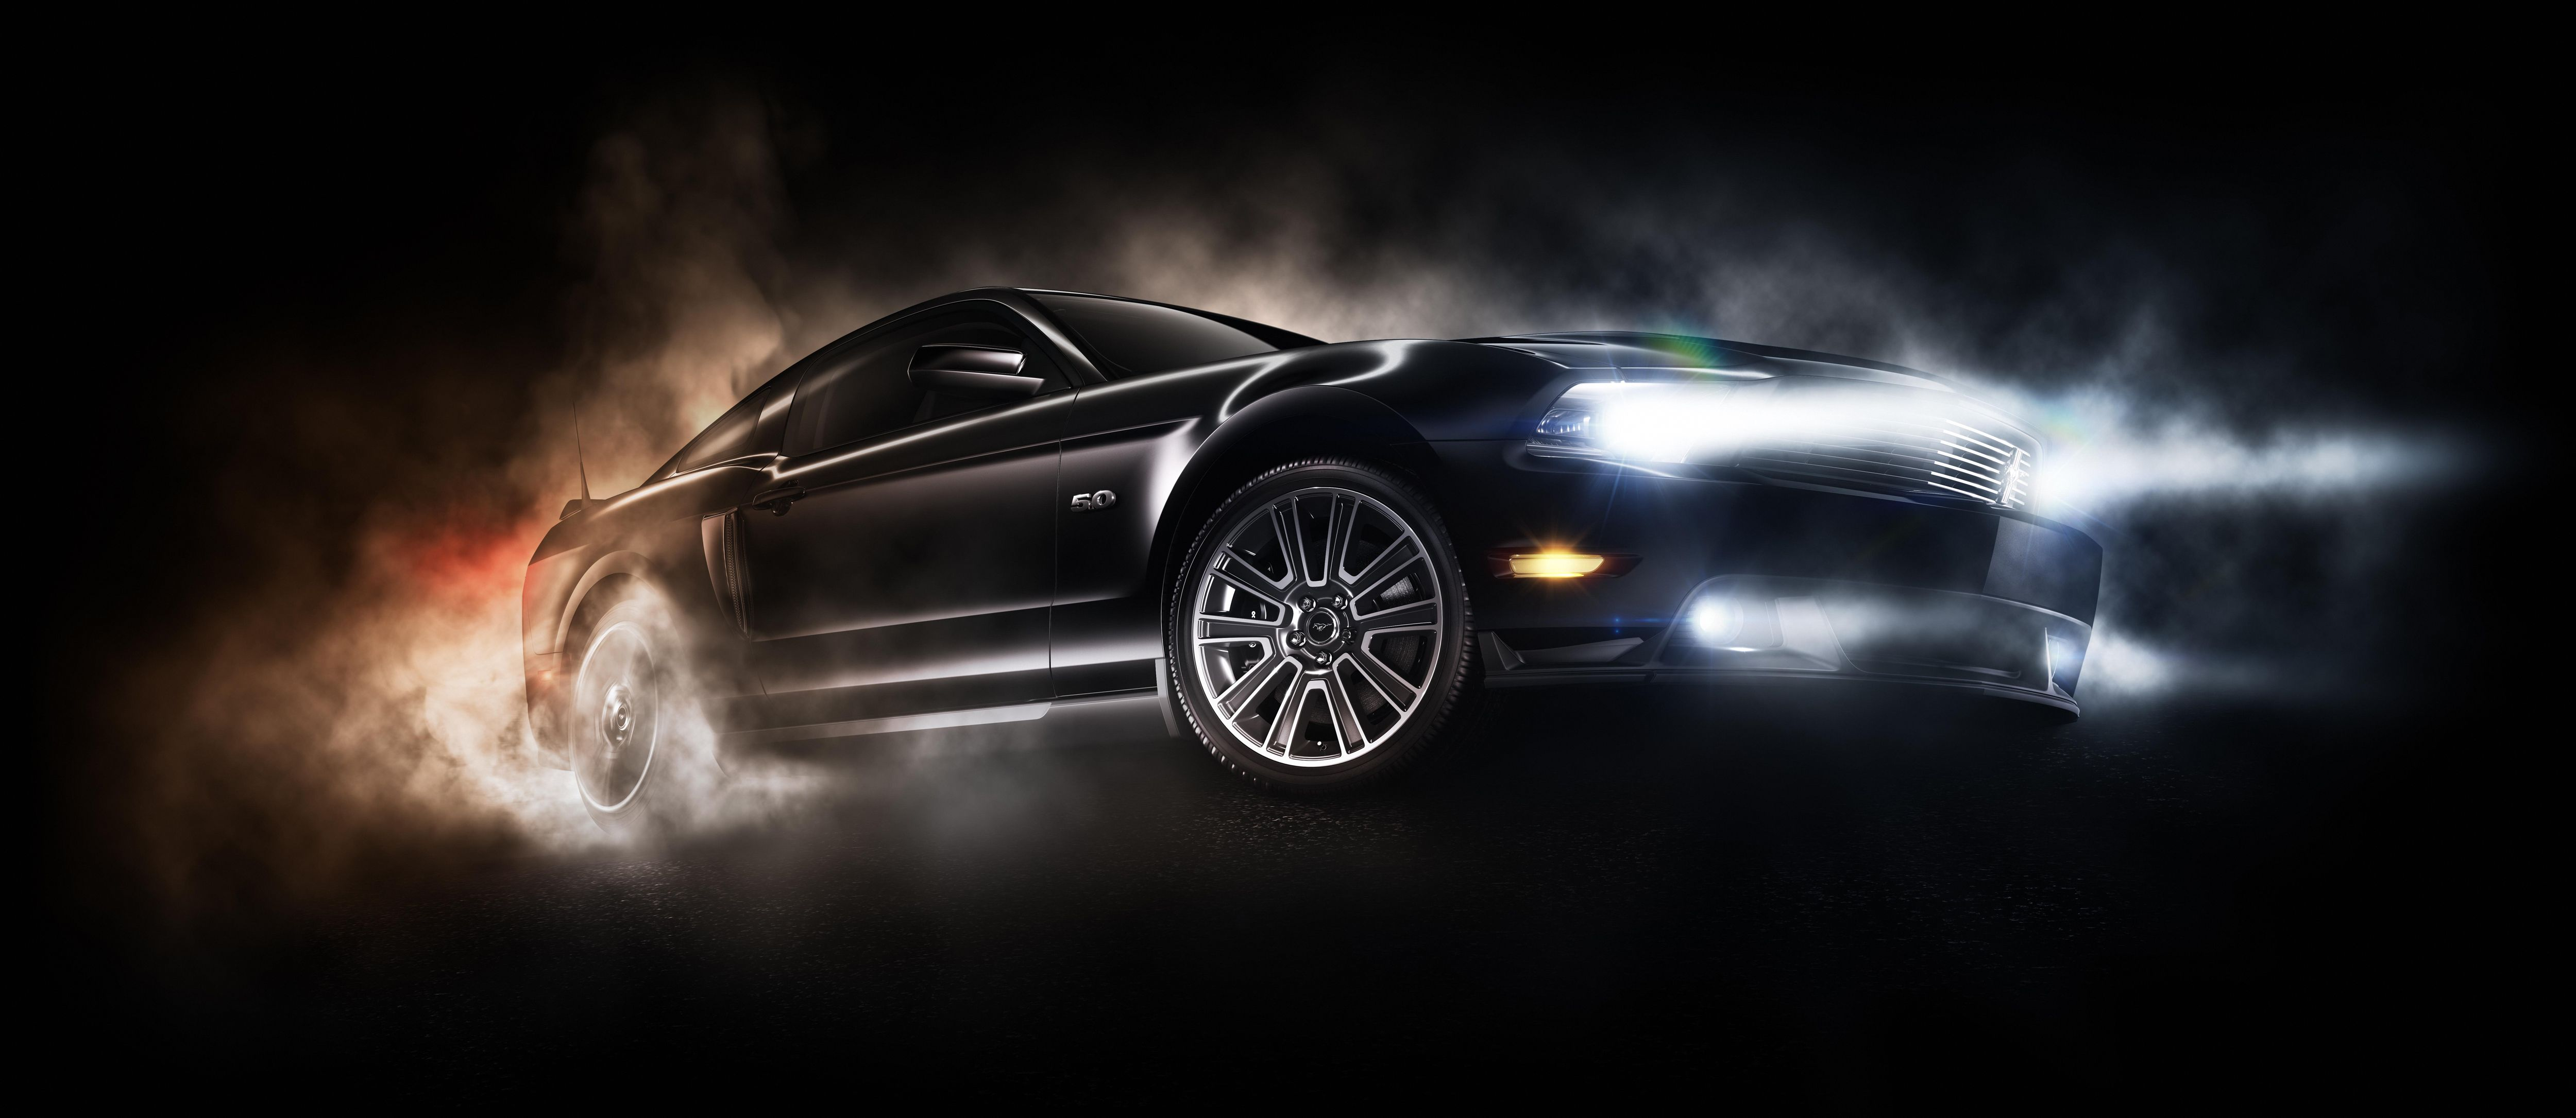 Mustang Burnout By Rob6015 Mustang Burnout By Rob6015 With Images